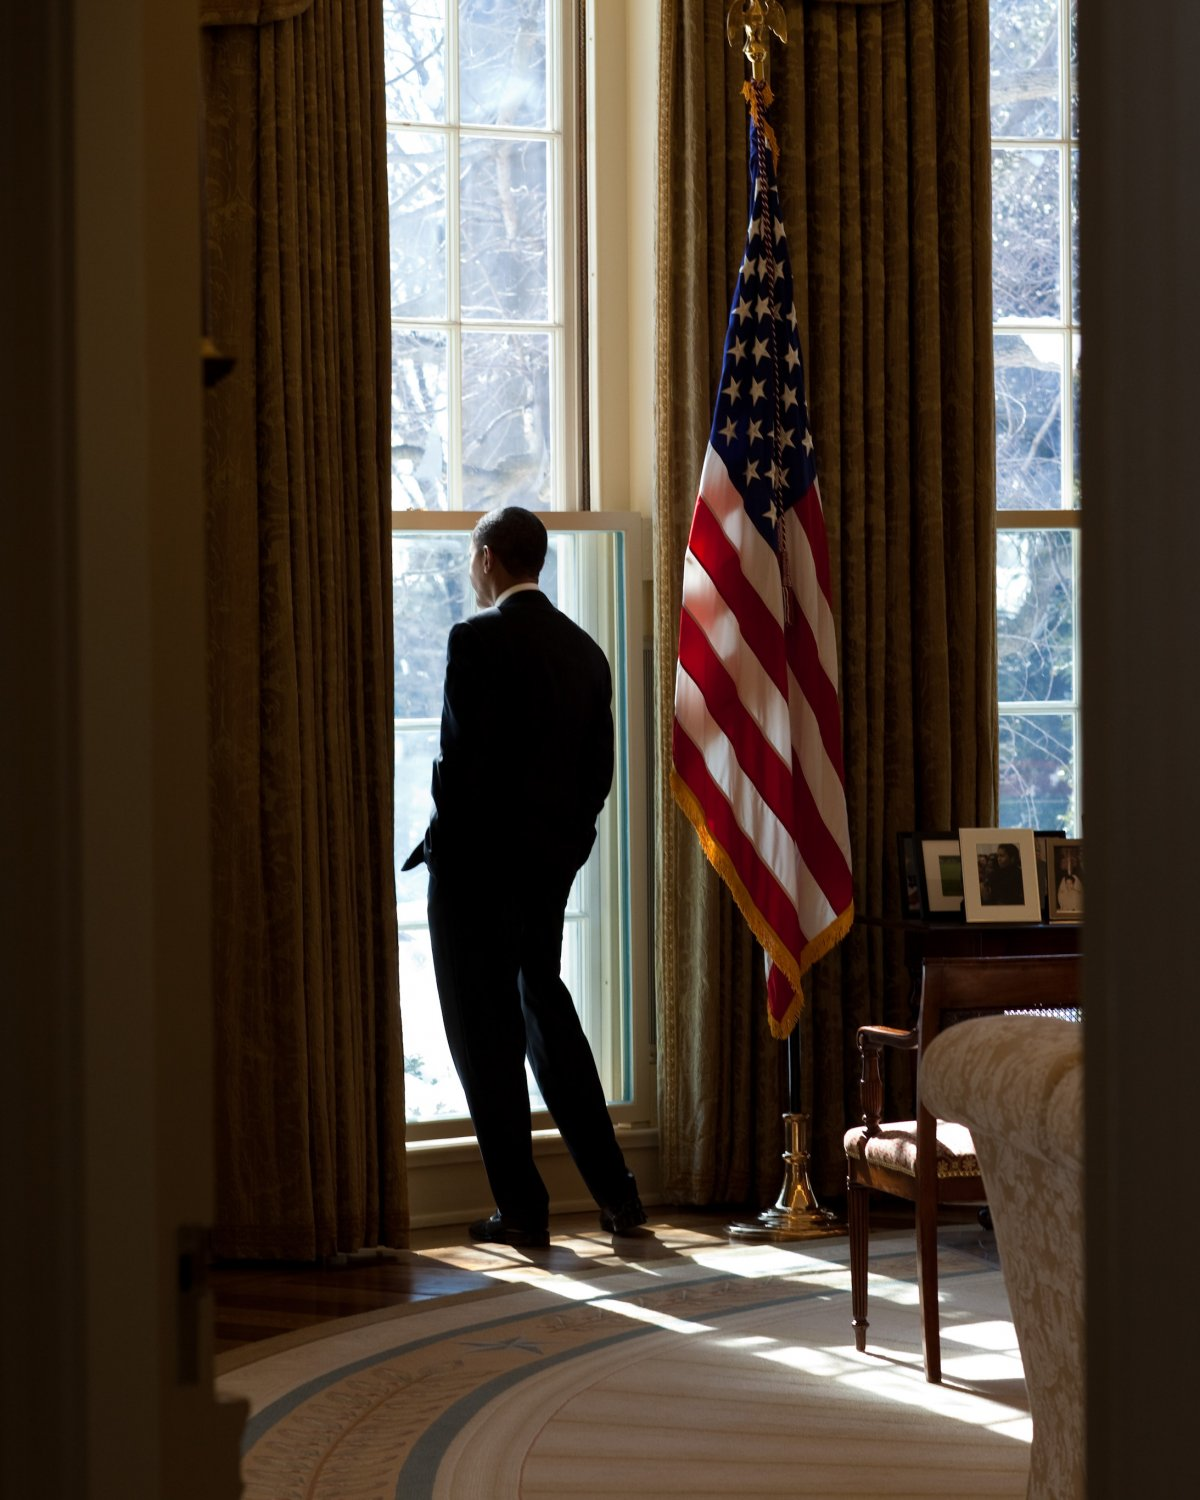 PRESIDENT BARACK OBAMA LOOKS OUT WINDOW IN THE OVAL OFFICE - 8X10 PHOTO (ZY-343)